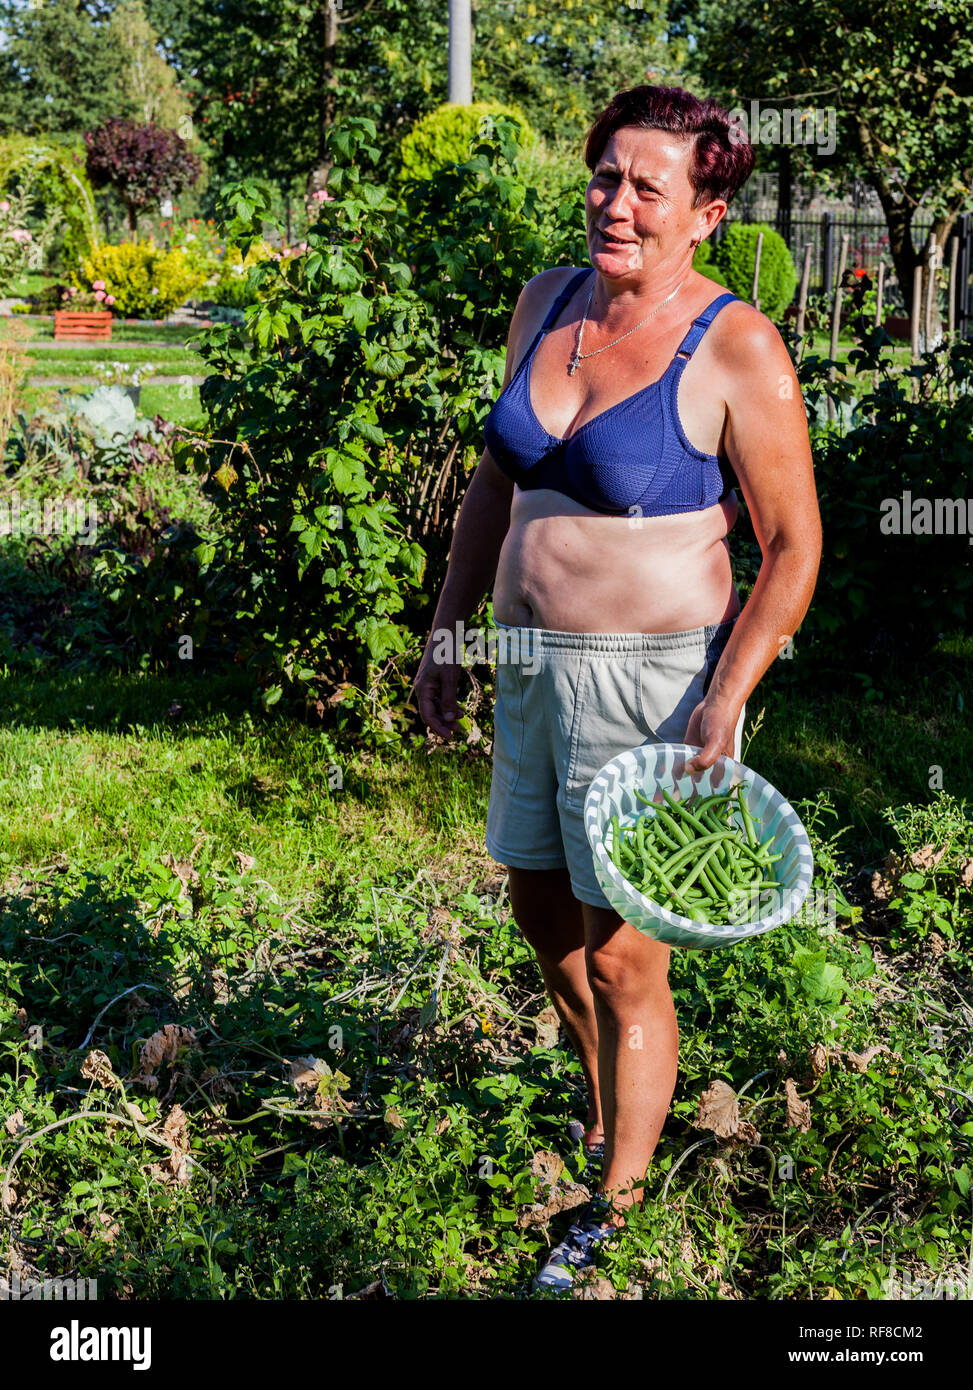 A woman wearing brassiere standing in the middle of the vegetable garden. The brunet housewife holding a basket full of crops. Harvesting the plant fr - Stock Image